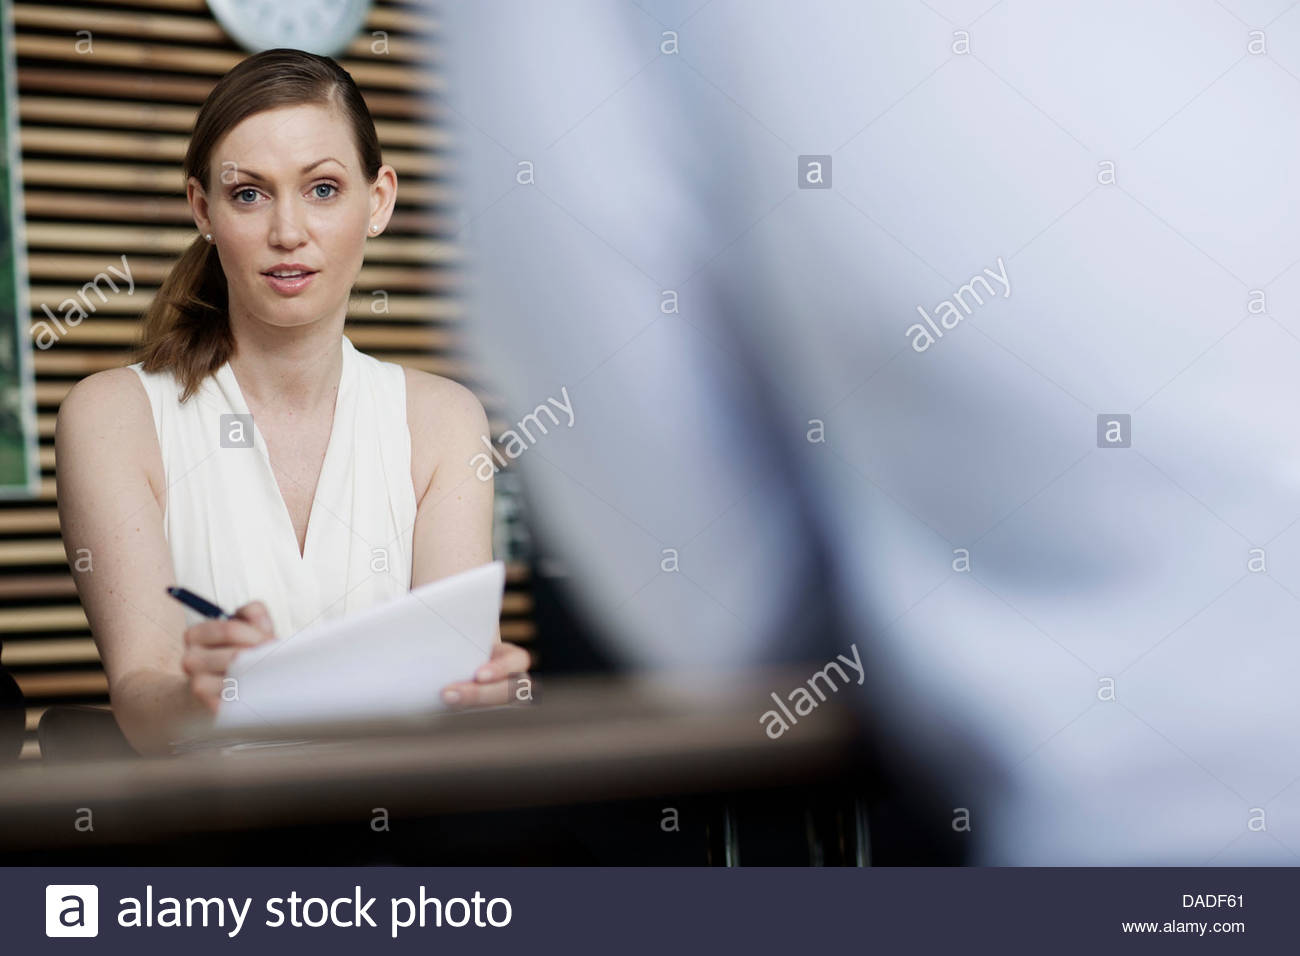 Woman looking at camera - Stock Image